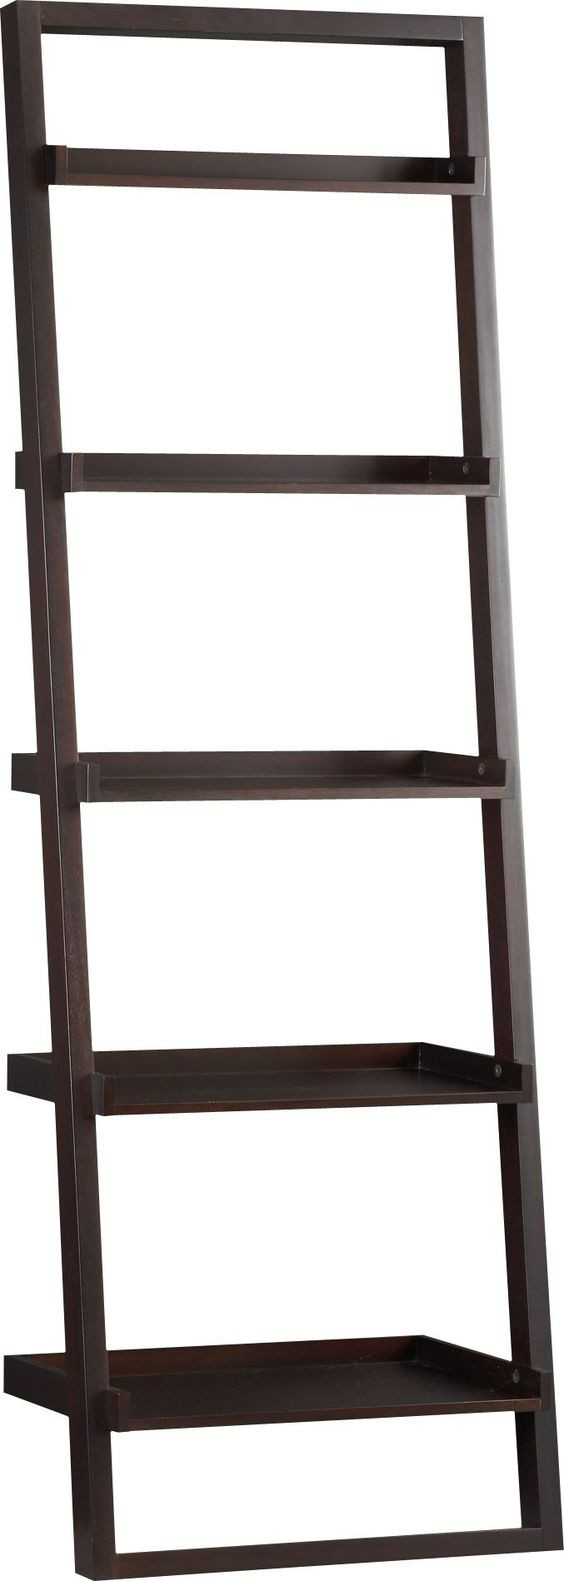 Crate & Barrel Sloane Leaning Bookcases